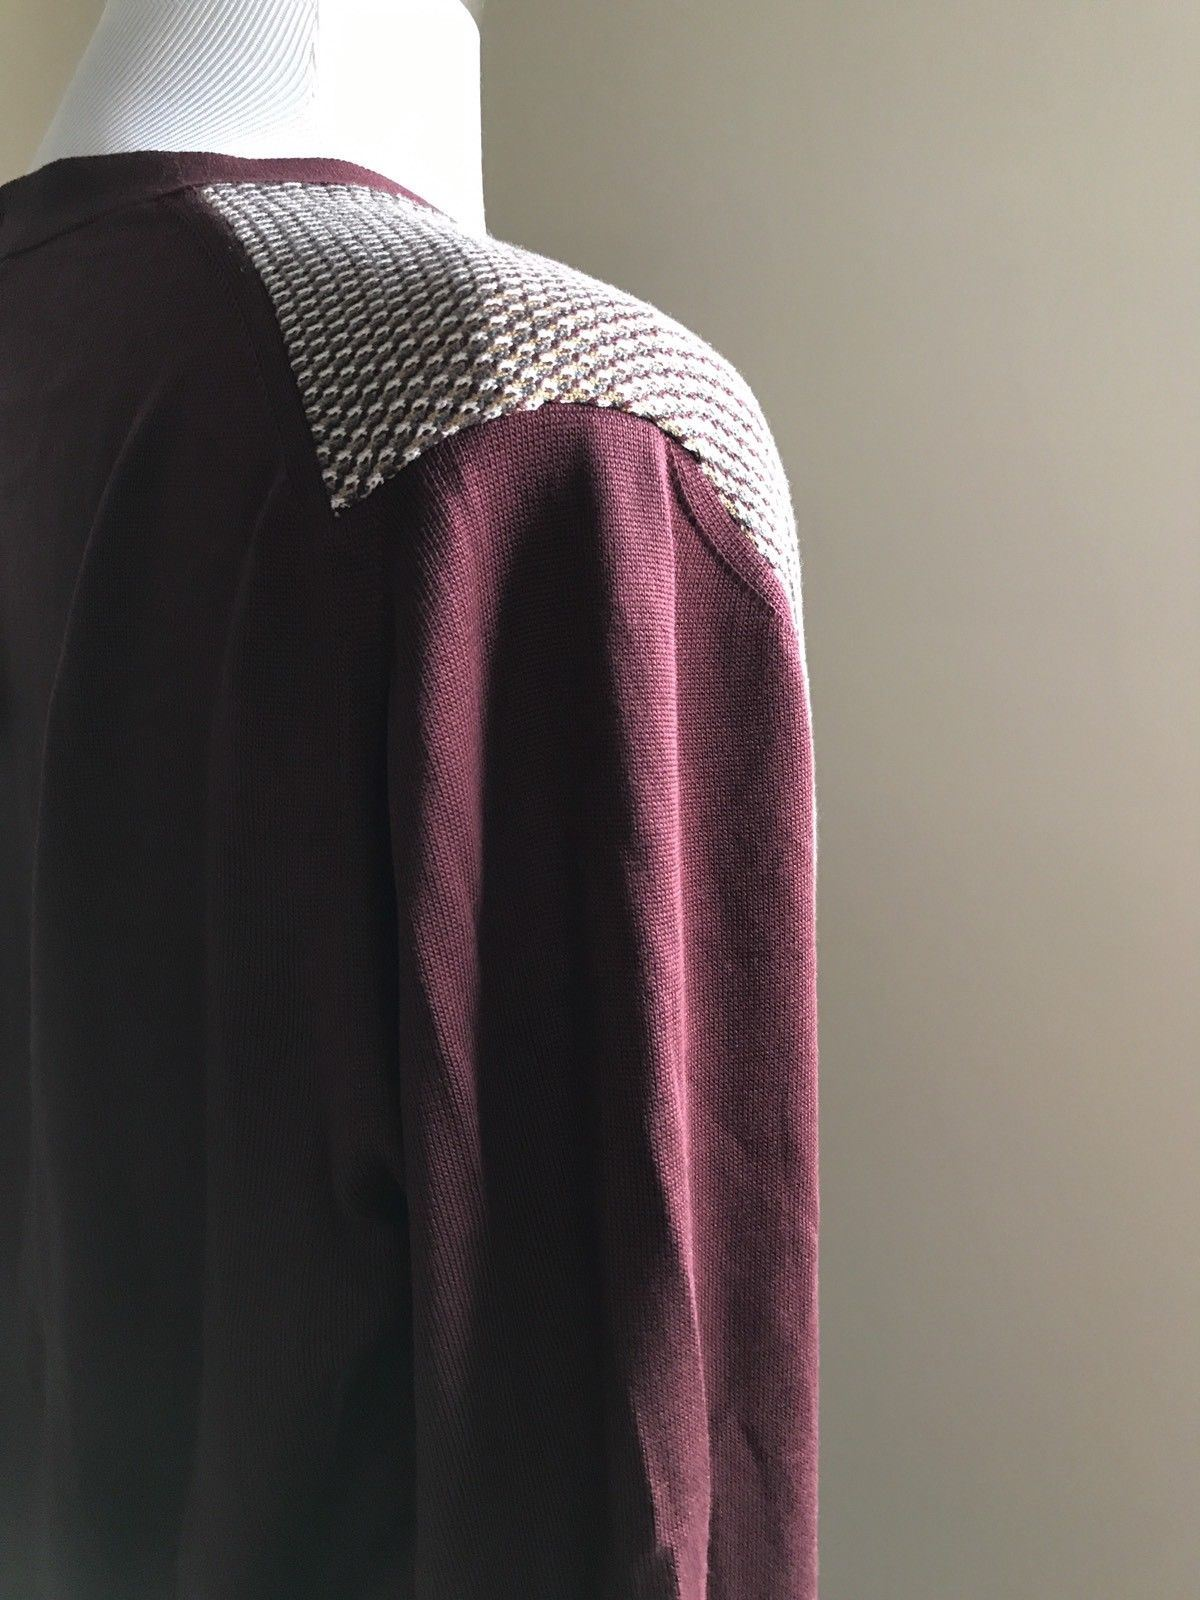 New $1195 Ermenegildo Zegna Cardigan Jacket Sweater Burgundy/Beige L US (52 Eur)